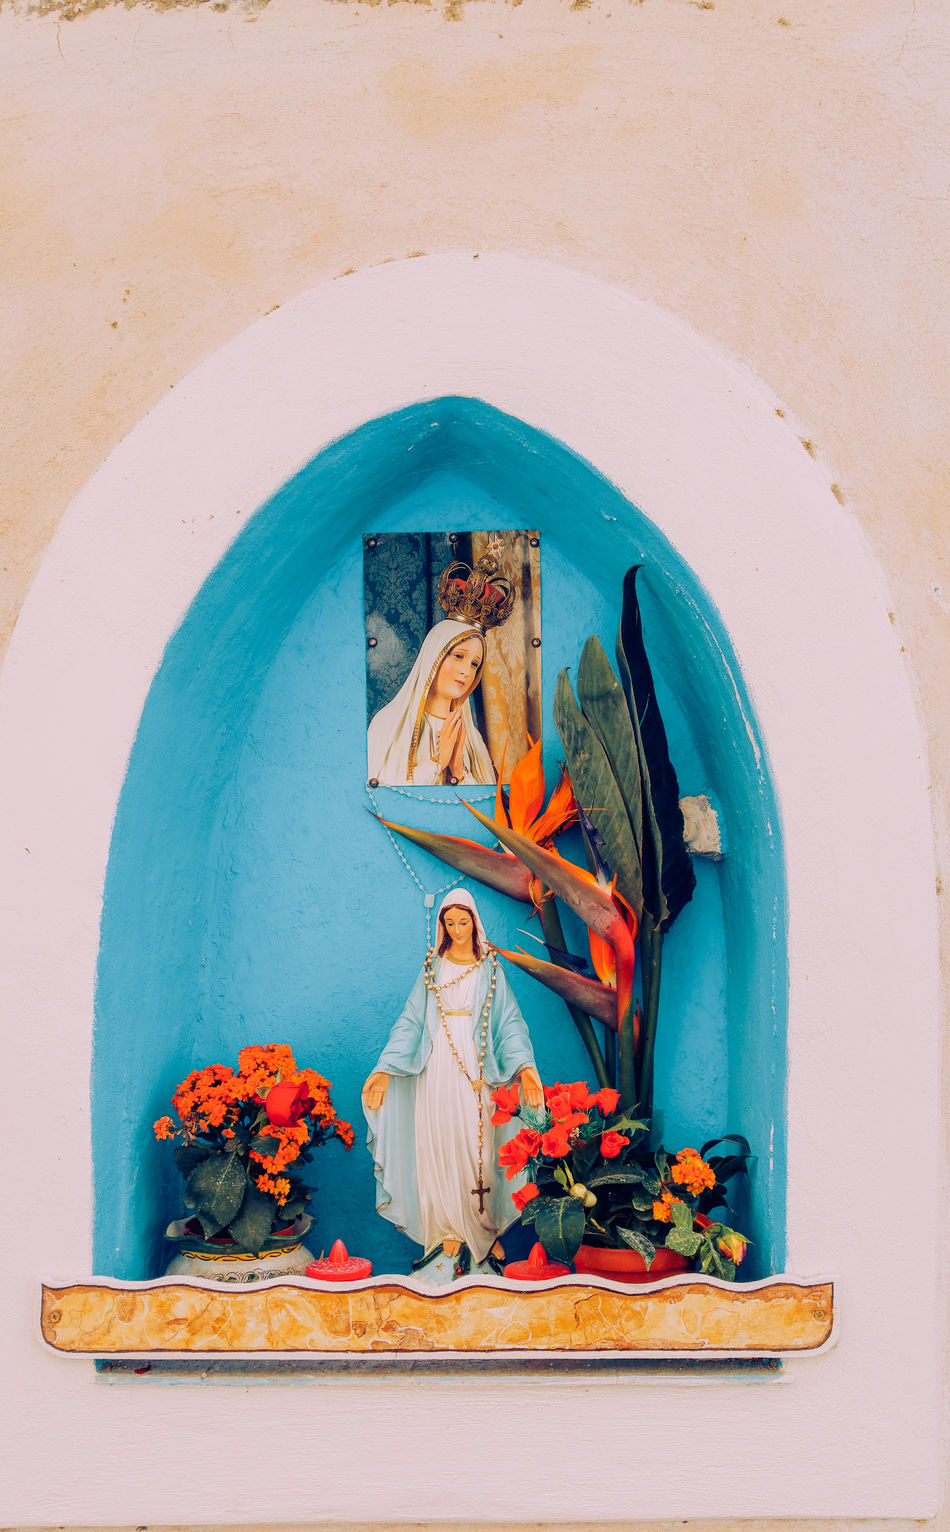 Devotional niche in a street of Procida island with madonna statue and flowers plant Architecture Art And Craft Bay Of Naples Creativity Day Devotion Devotional Female Likeness Flower Human Representation Madonna Male Likeness Naples, Italy Niche No People Procida Sculpture Statue Statue Street Streetphotography